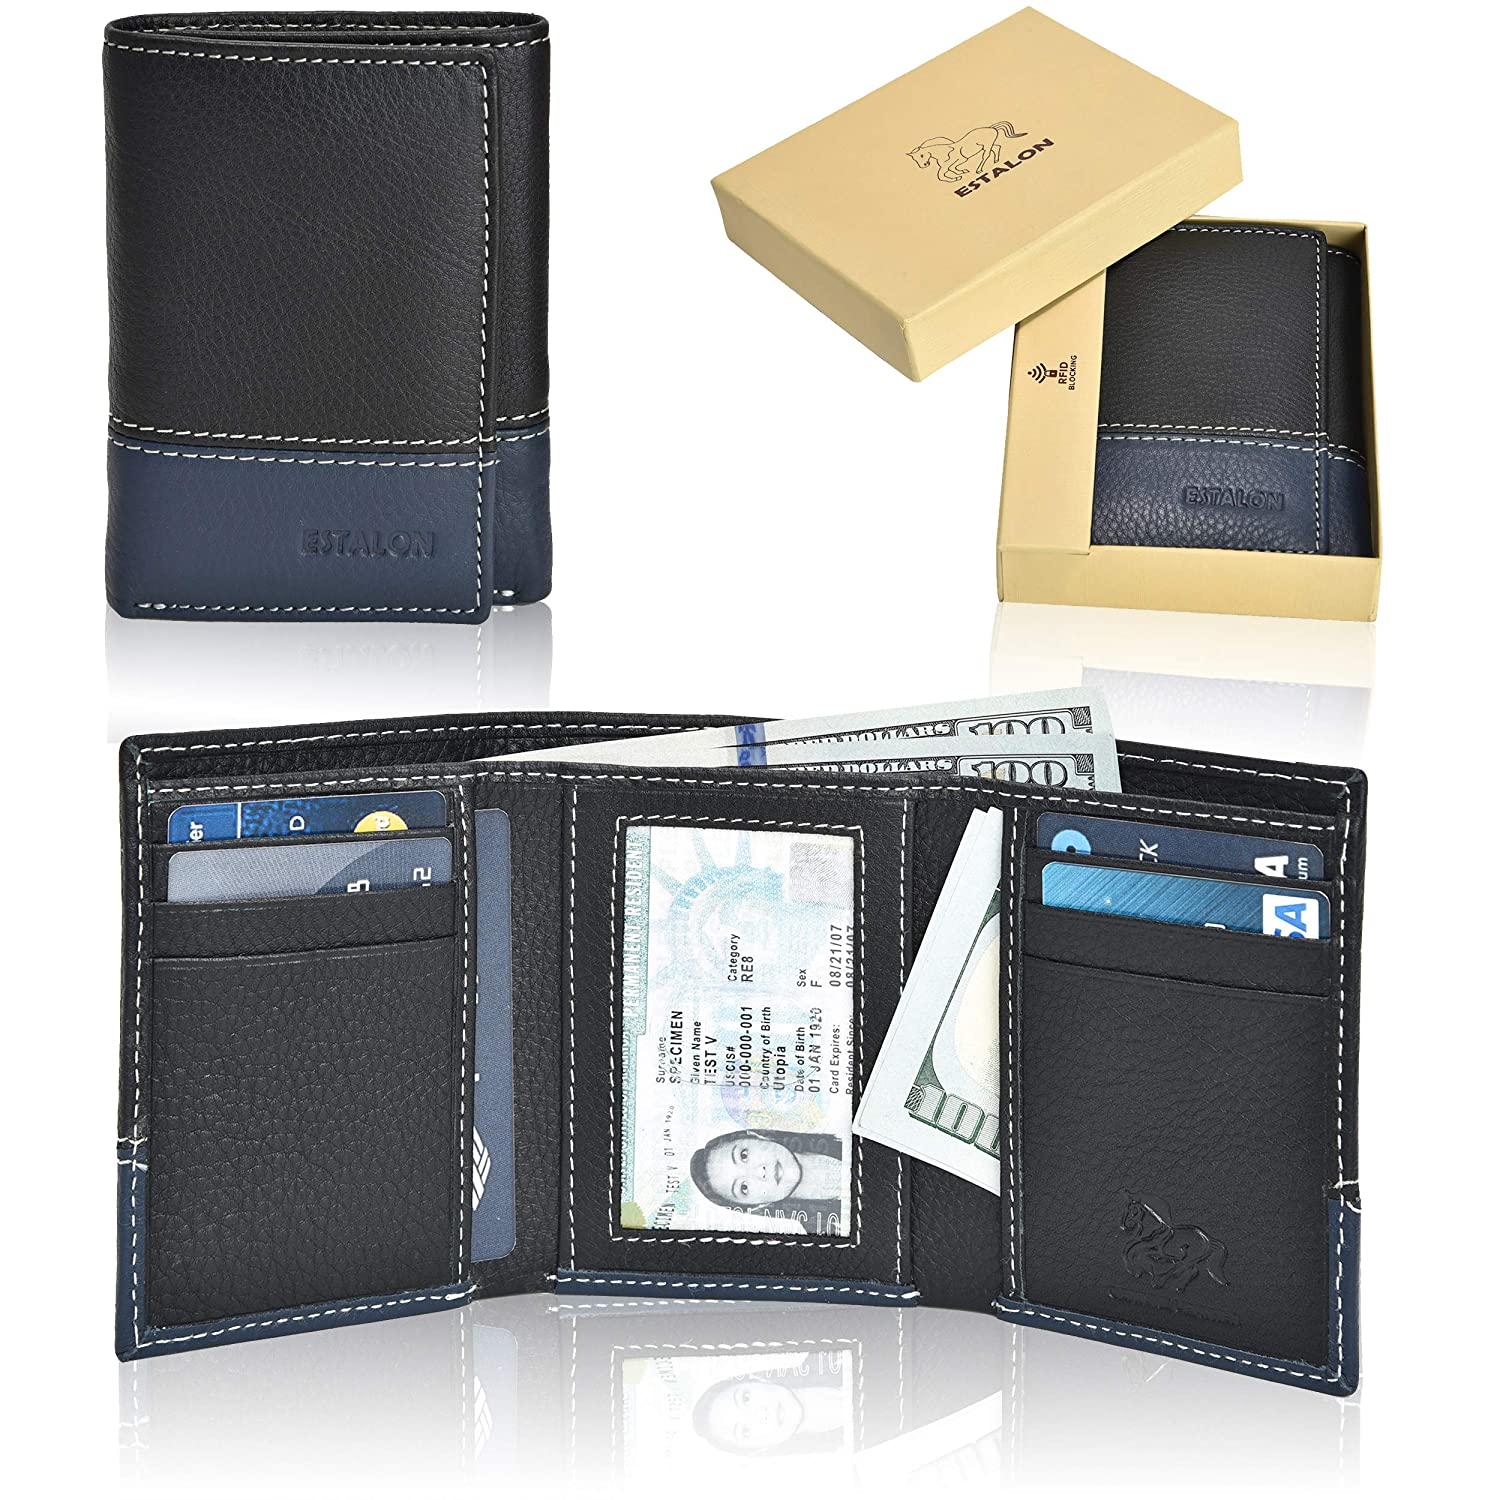 RFID Leather Trifold Wallets for Men - Handmade Slim Mens Wallet 6 Credit Card ID Window and Gift Box Secure by Estalon Black Italia 3.5x4.4x0.75